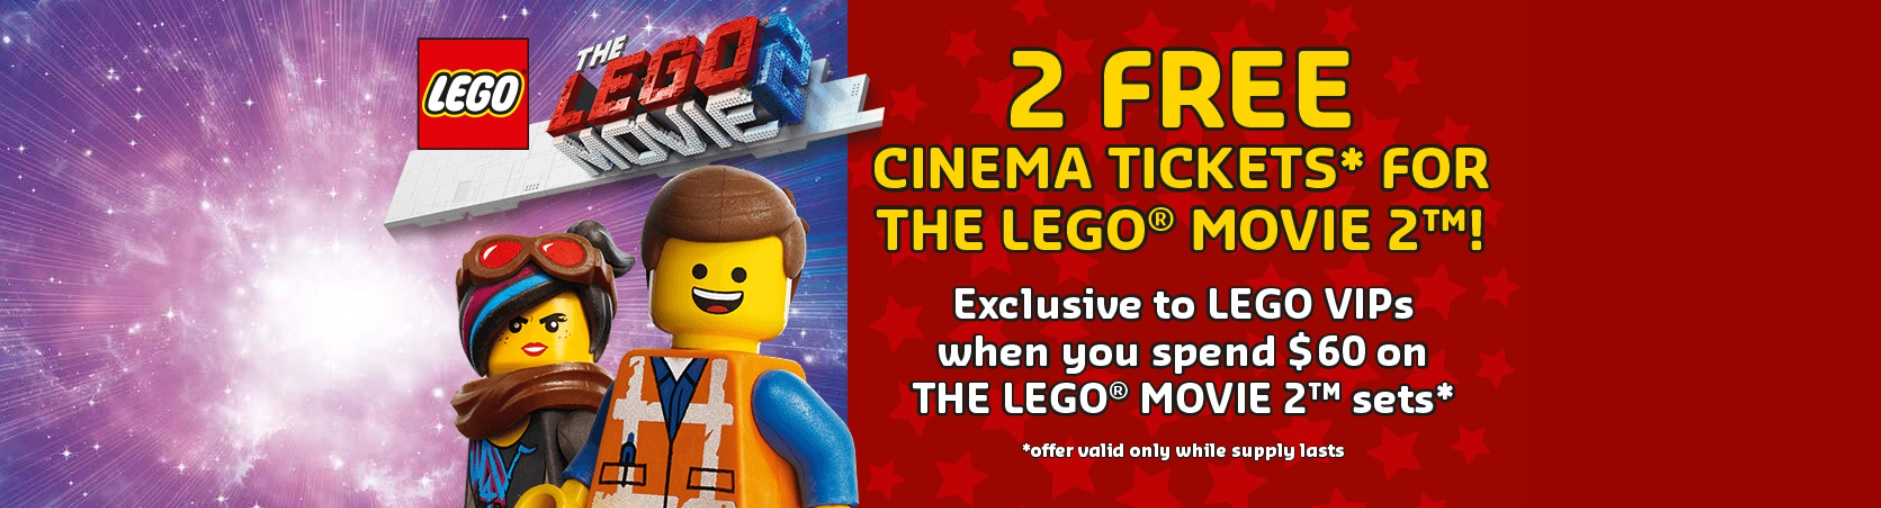 Free Movie Tickets To See The Lego Movie 2 For Vip Members The Brick Fan